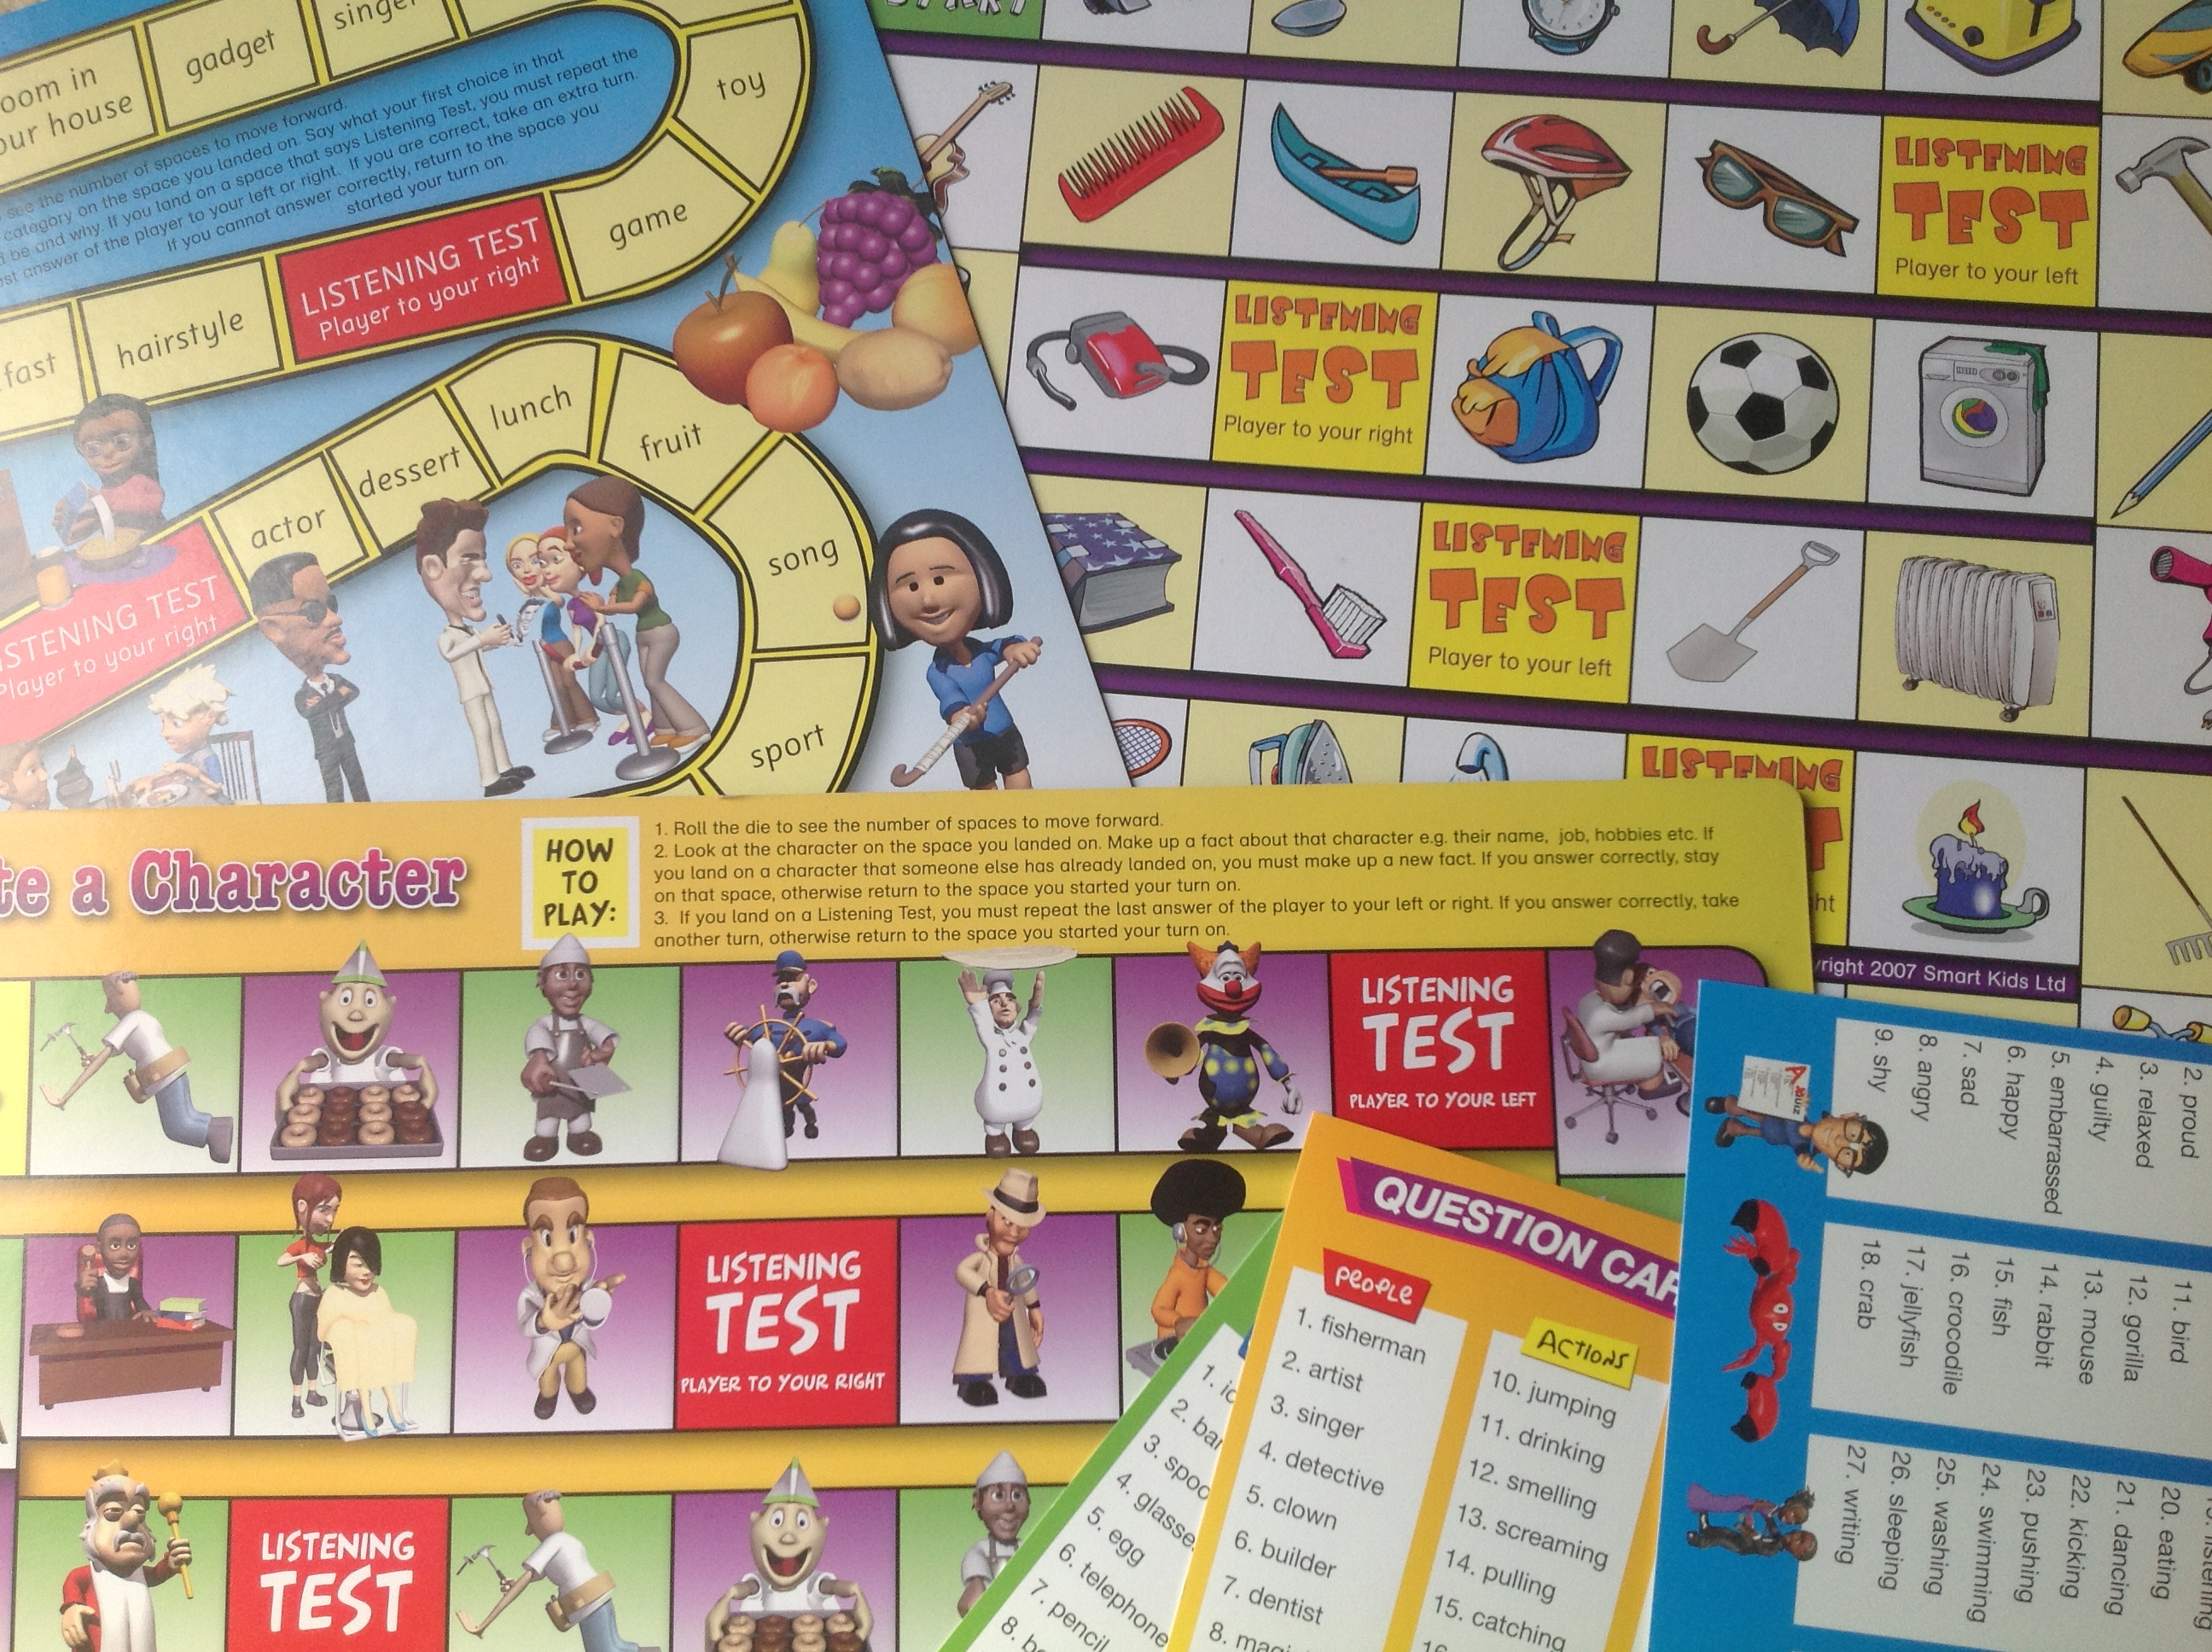 Review of Smart Kids board games by Helen